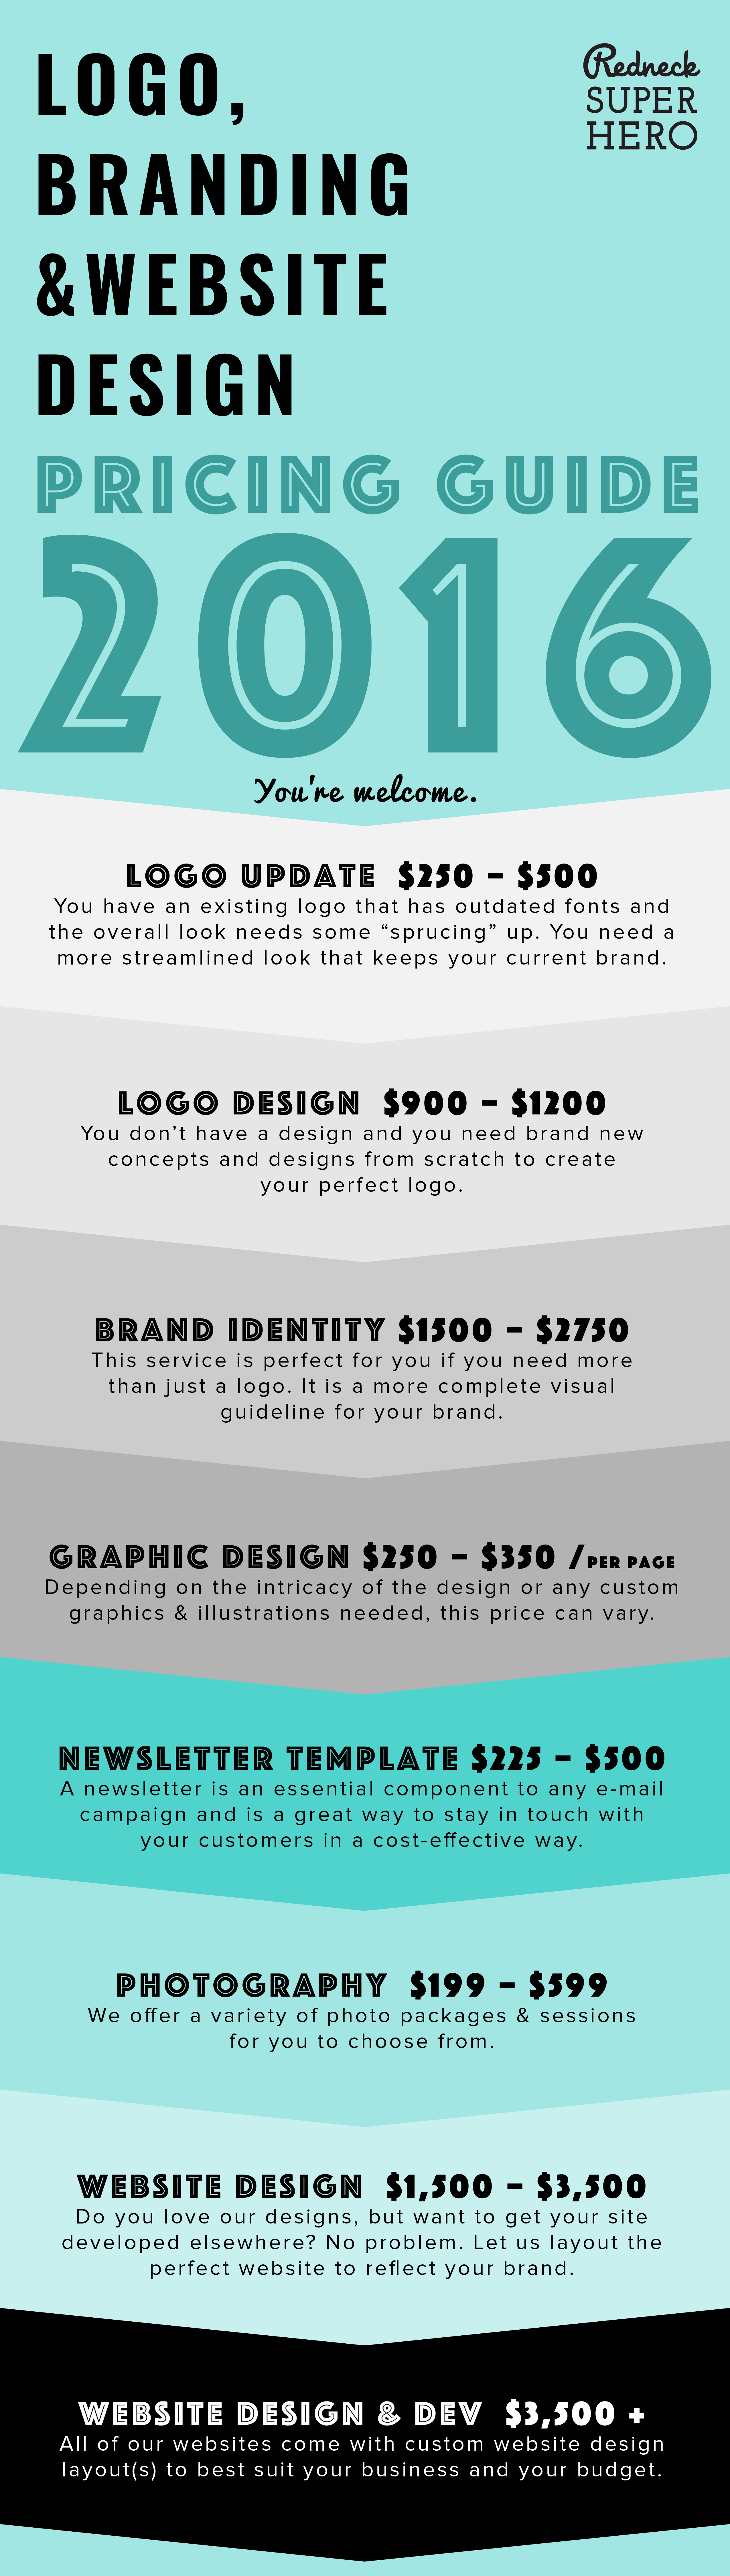 Pricing Infographic Website Design Pricing Graphic Design Business Freelance Graphic Design